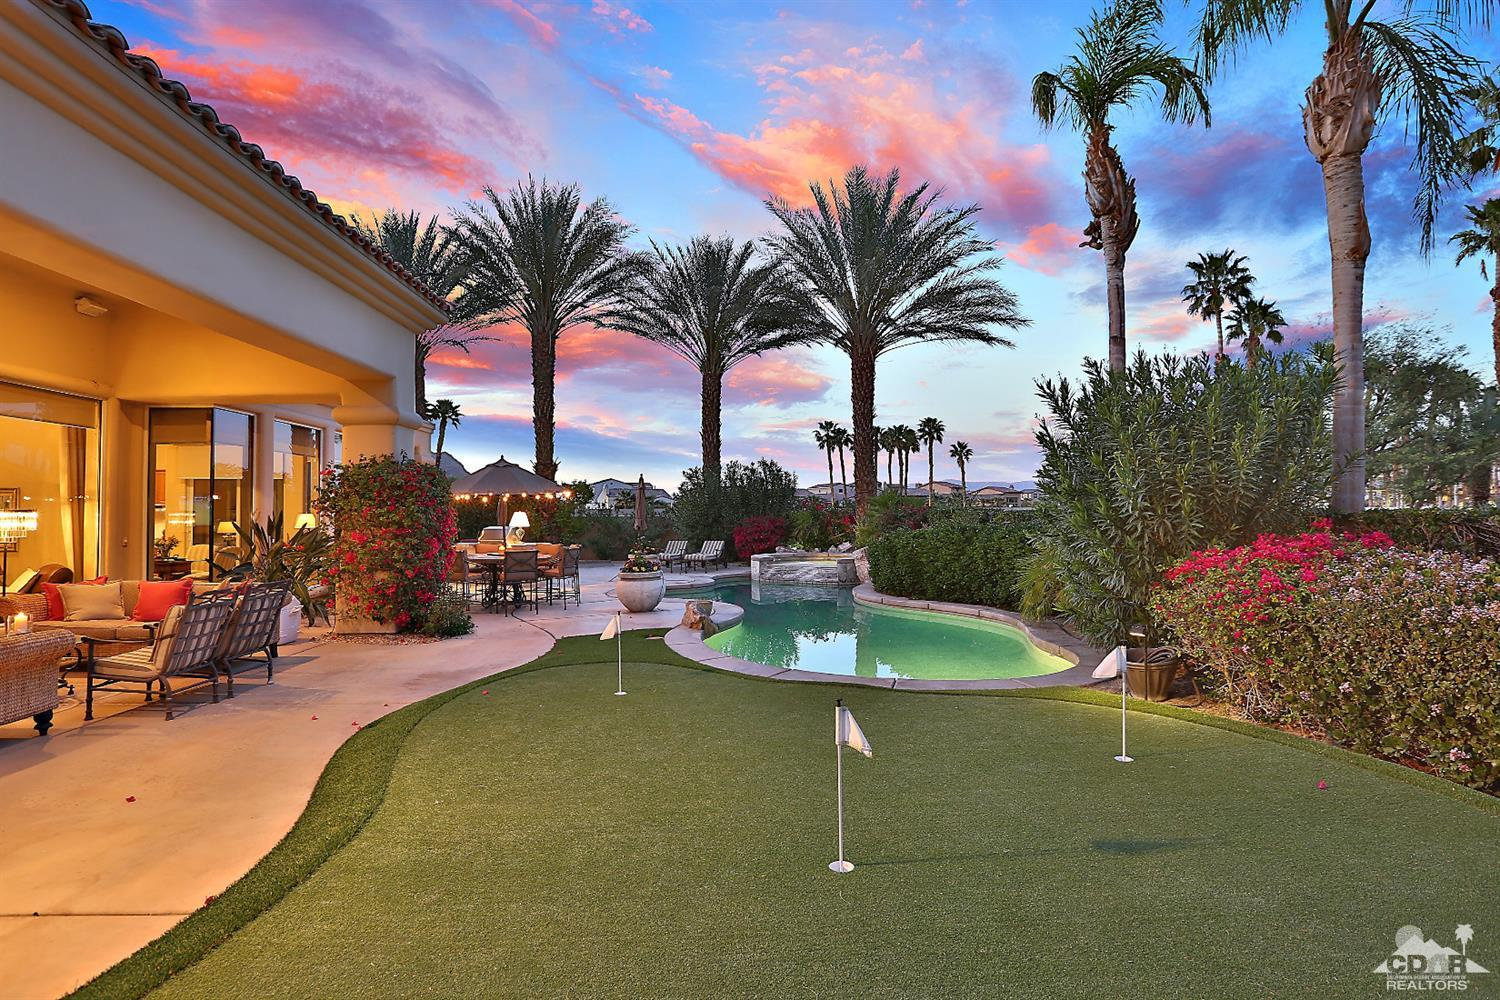 Pga weiskopf luxury homes for sale la quinta for Luxury homes for sale la